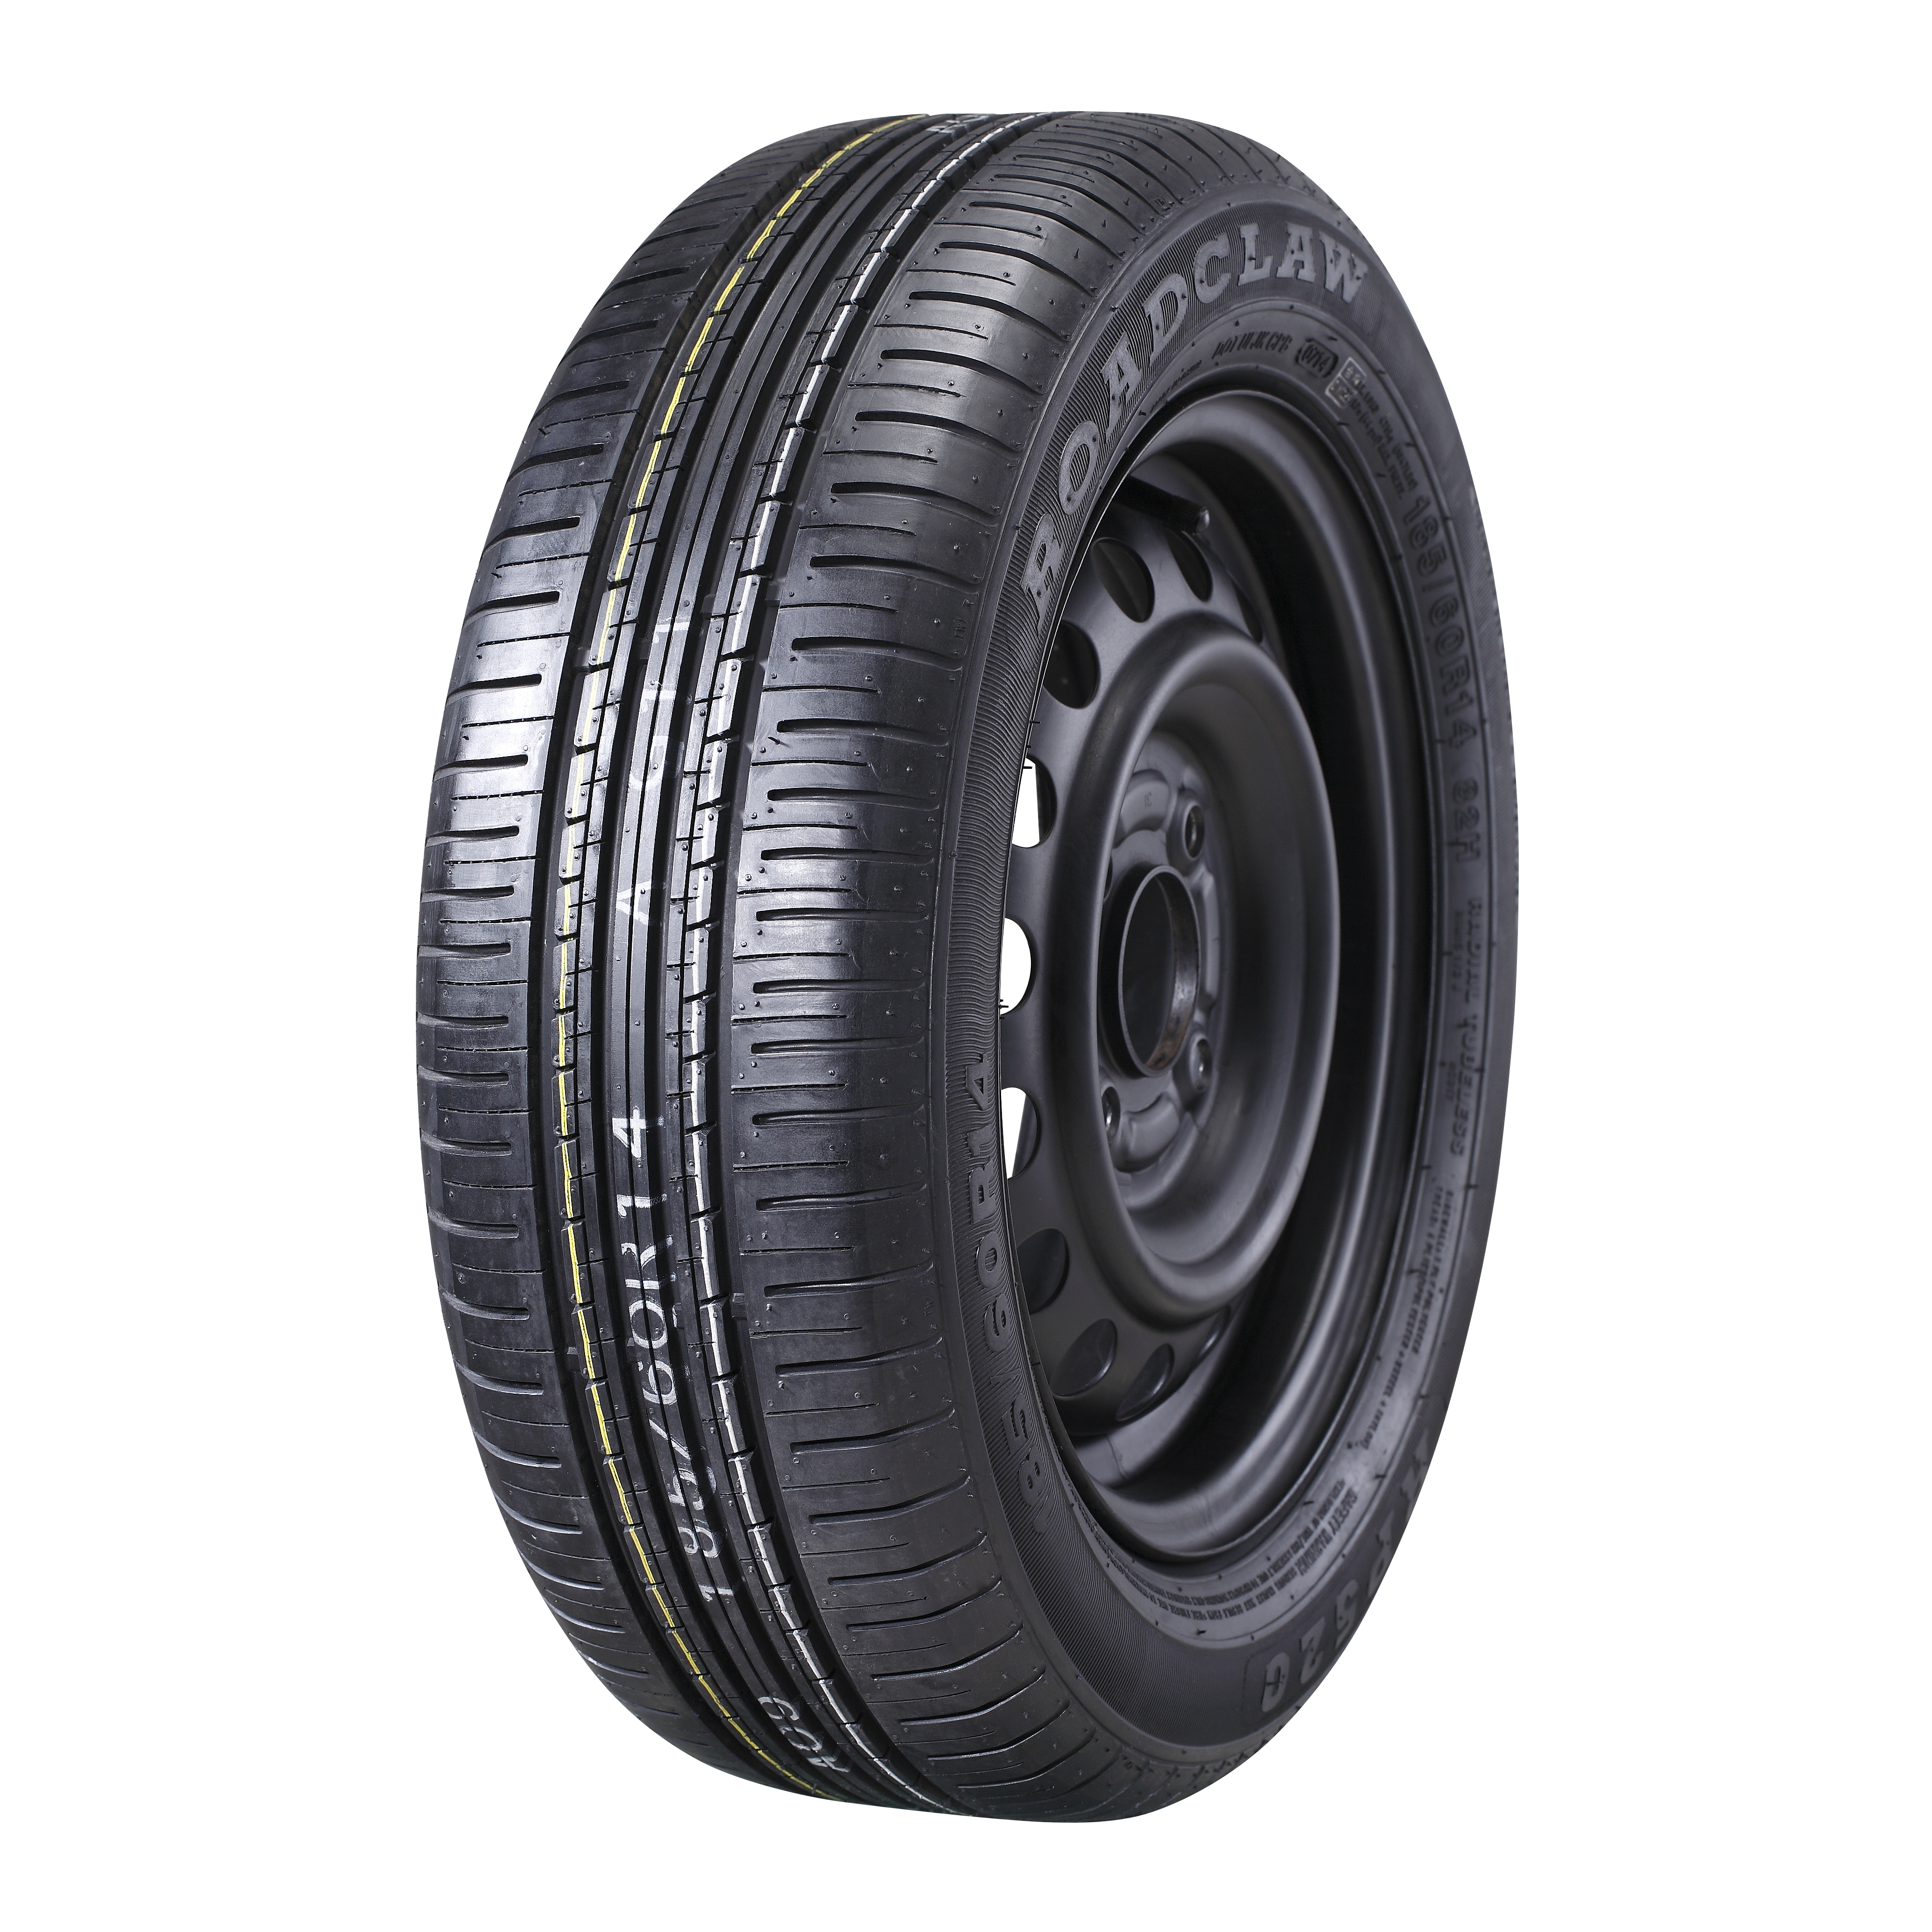 Roadclaw RP520 175/70R13 82T